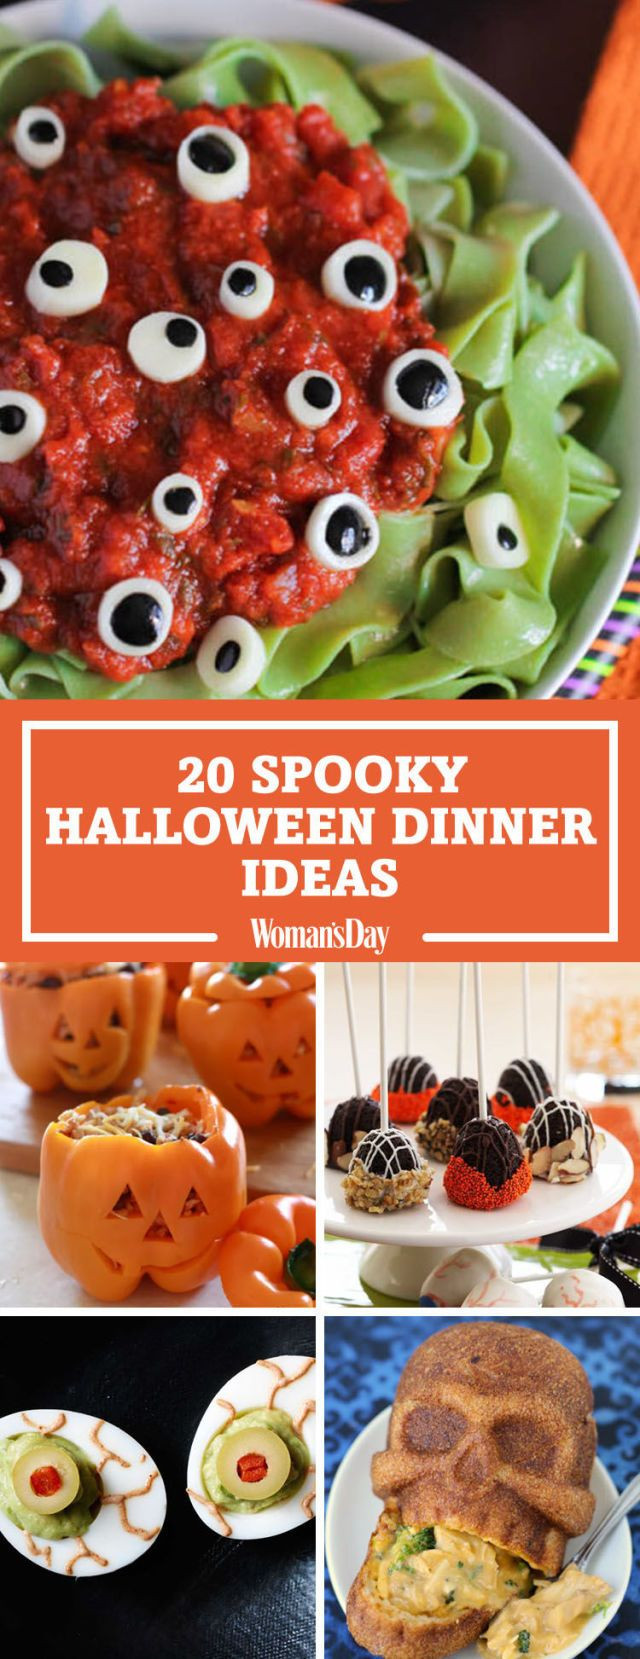 Halloween Dinner Ideas For Kids  40 Halloween Dinner Ideas That Are So Good It s Scary